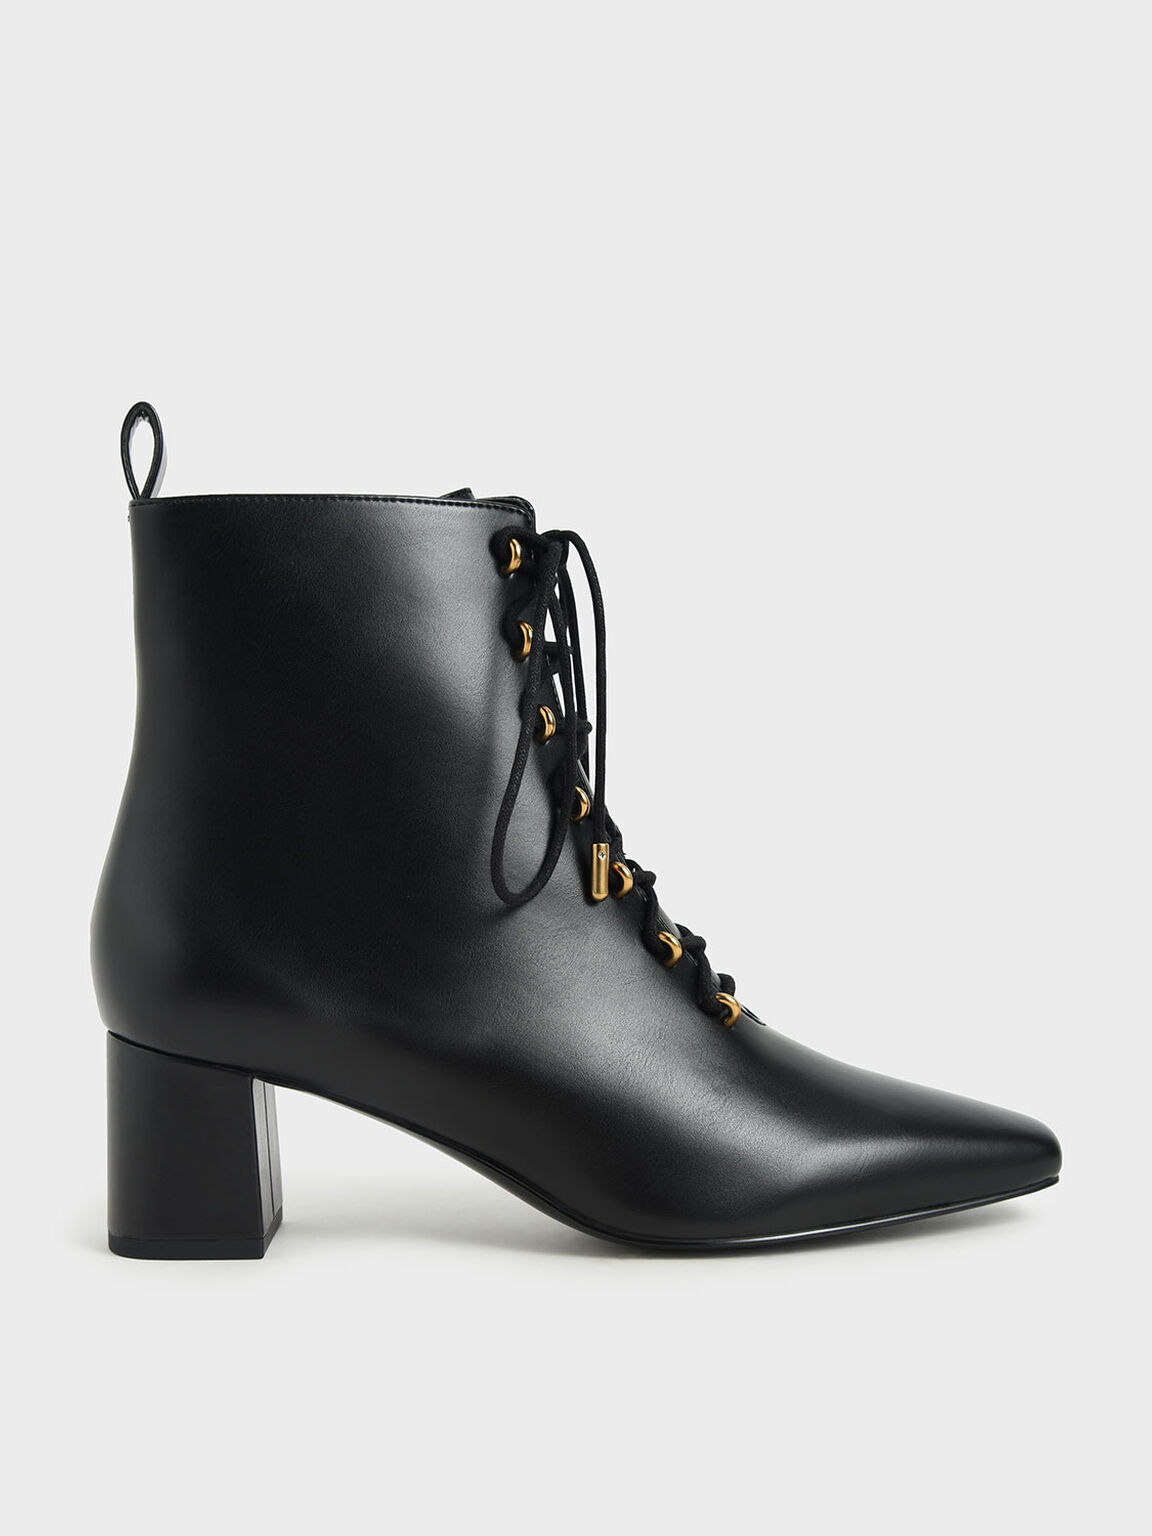 Metallic Lace-Up Ankle Boots, Black, hi-res